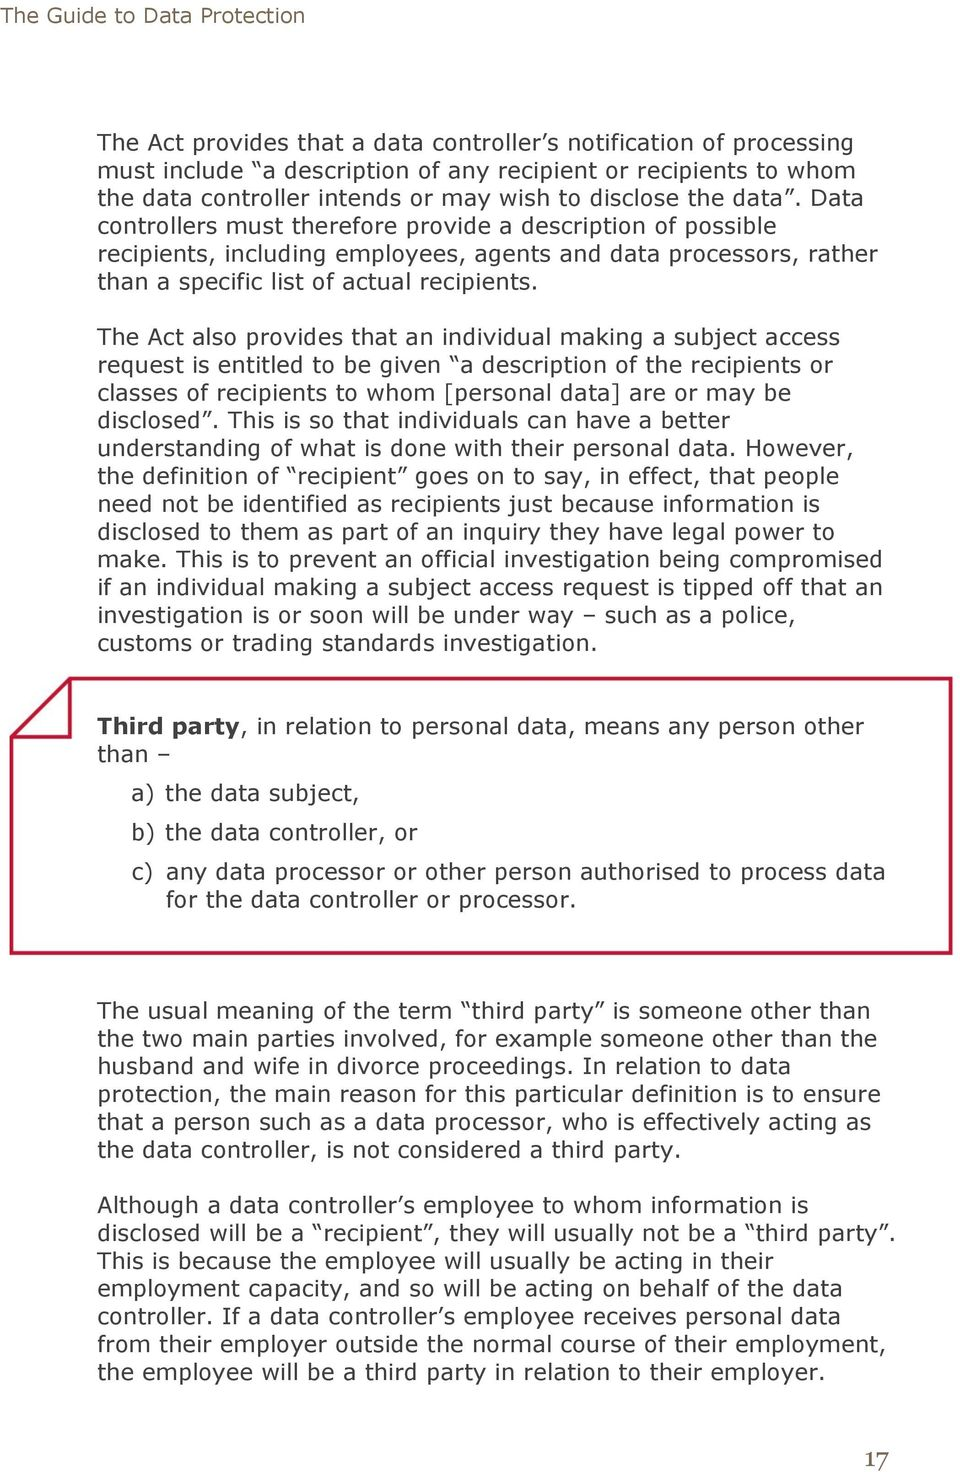 The Act also provides that an individual making a subject access request is entitled to be given a description of the recipients or classes of recipients to whom [personal data] are or may be